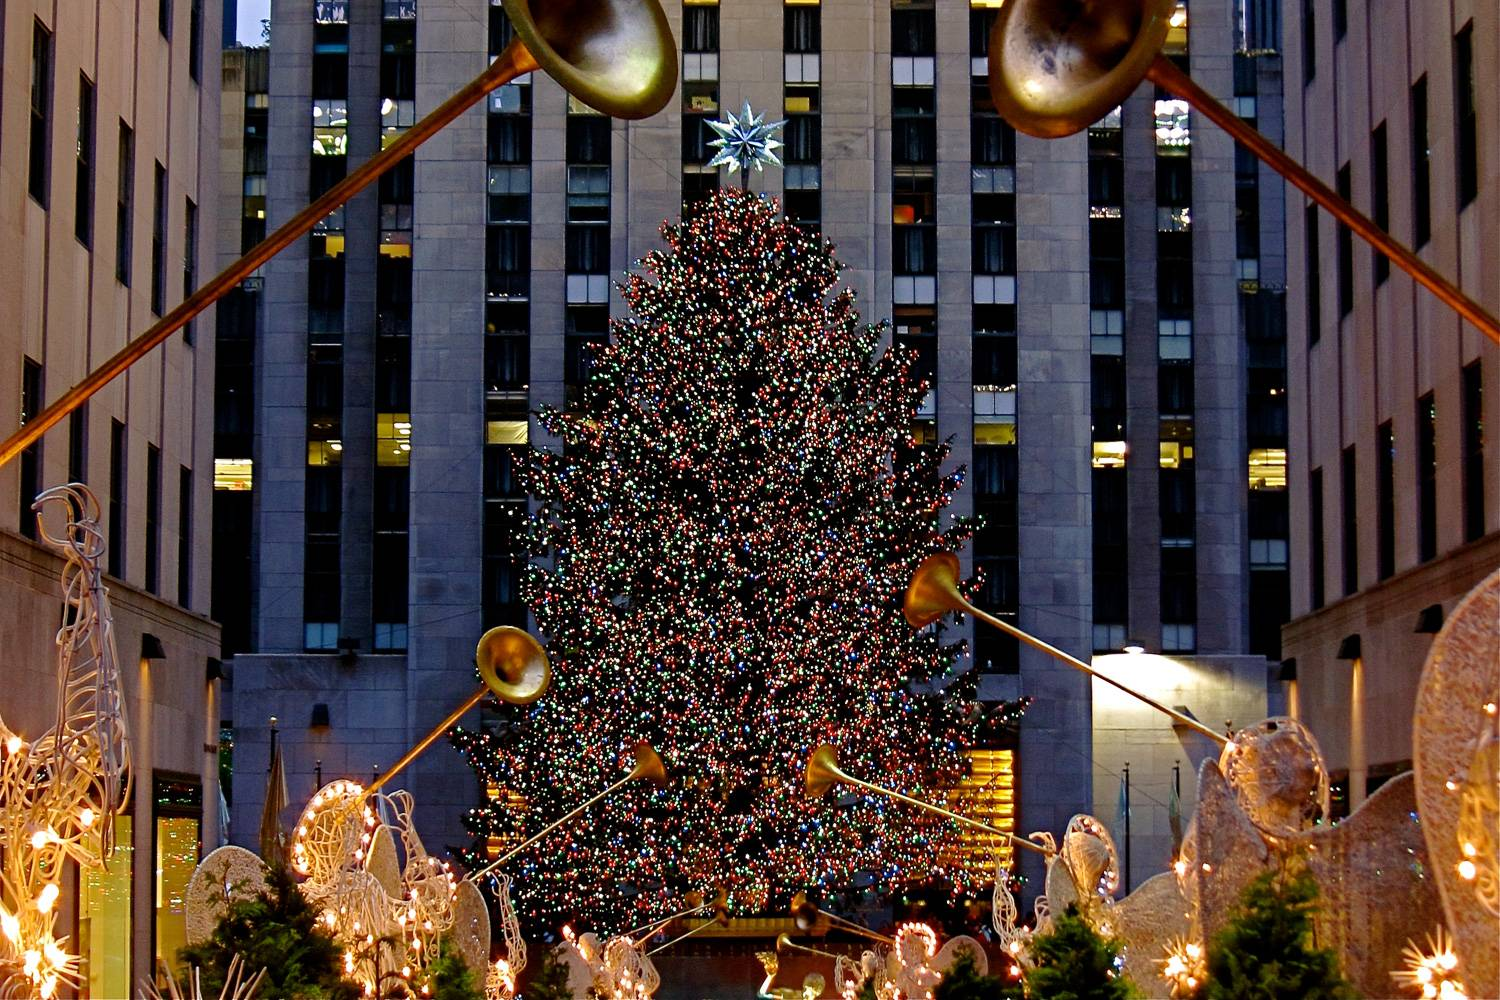 Image of the Christmas tree in Rockefeller Center decorated for the holidays.